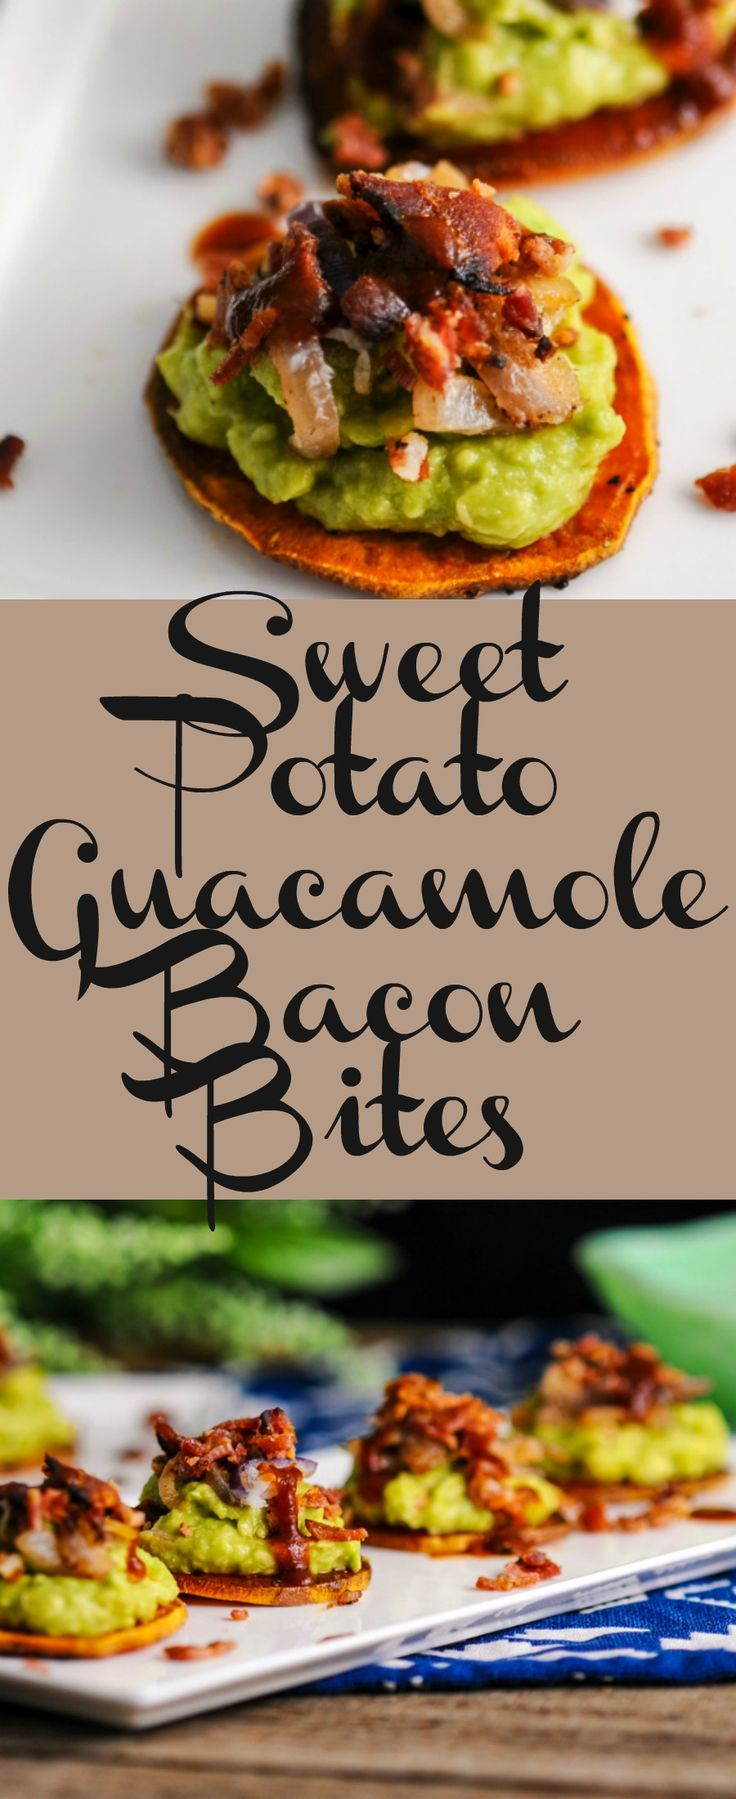 Sweet Potato, Guacamole Bacon Bites Recipe, appetizer, avocados, roasted, parties, easy, bite sized, bite size, make ahead, party, cold, dip, sauce, homemade, veggies